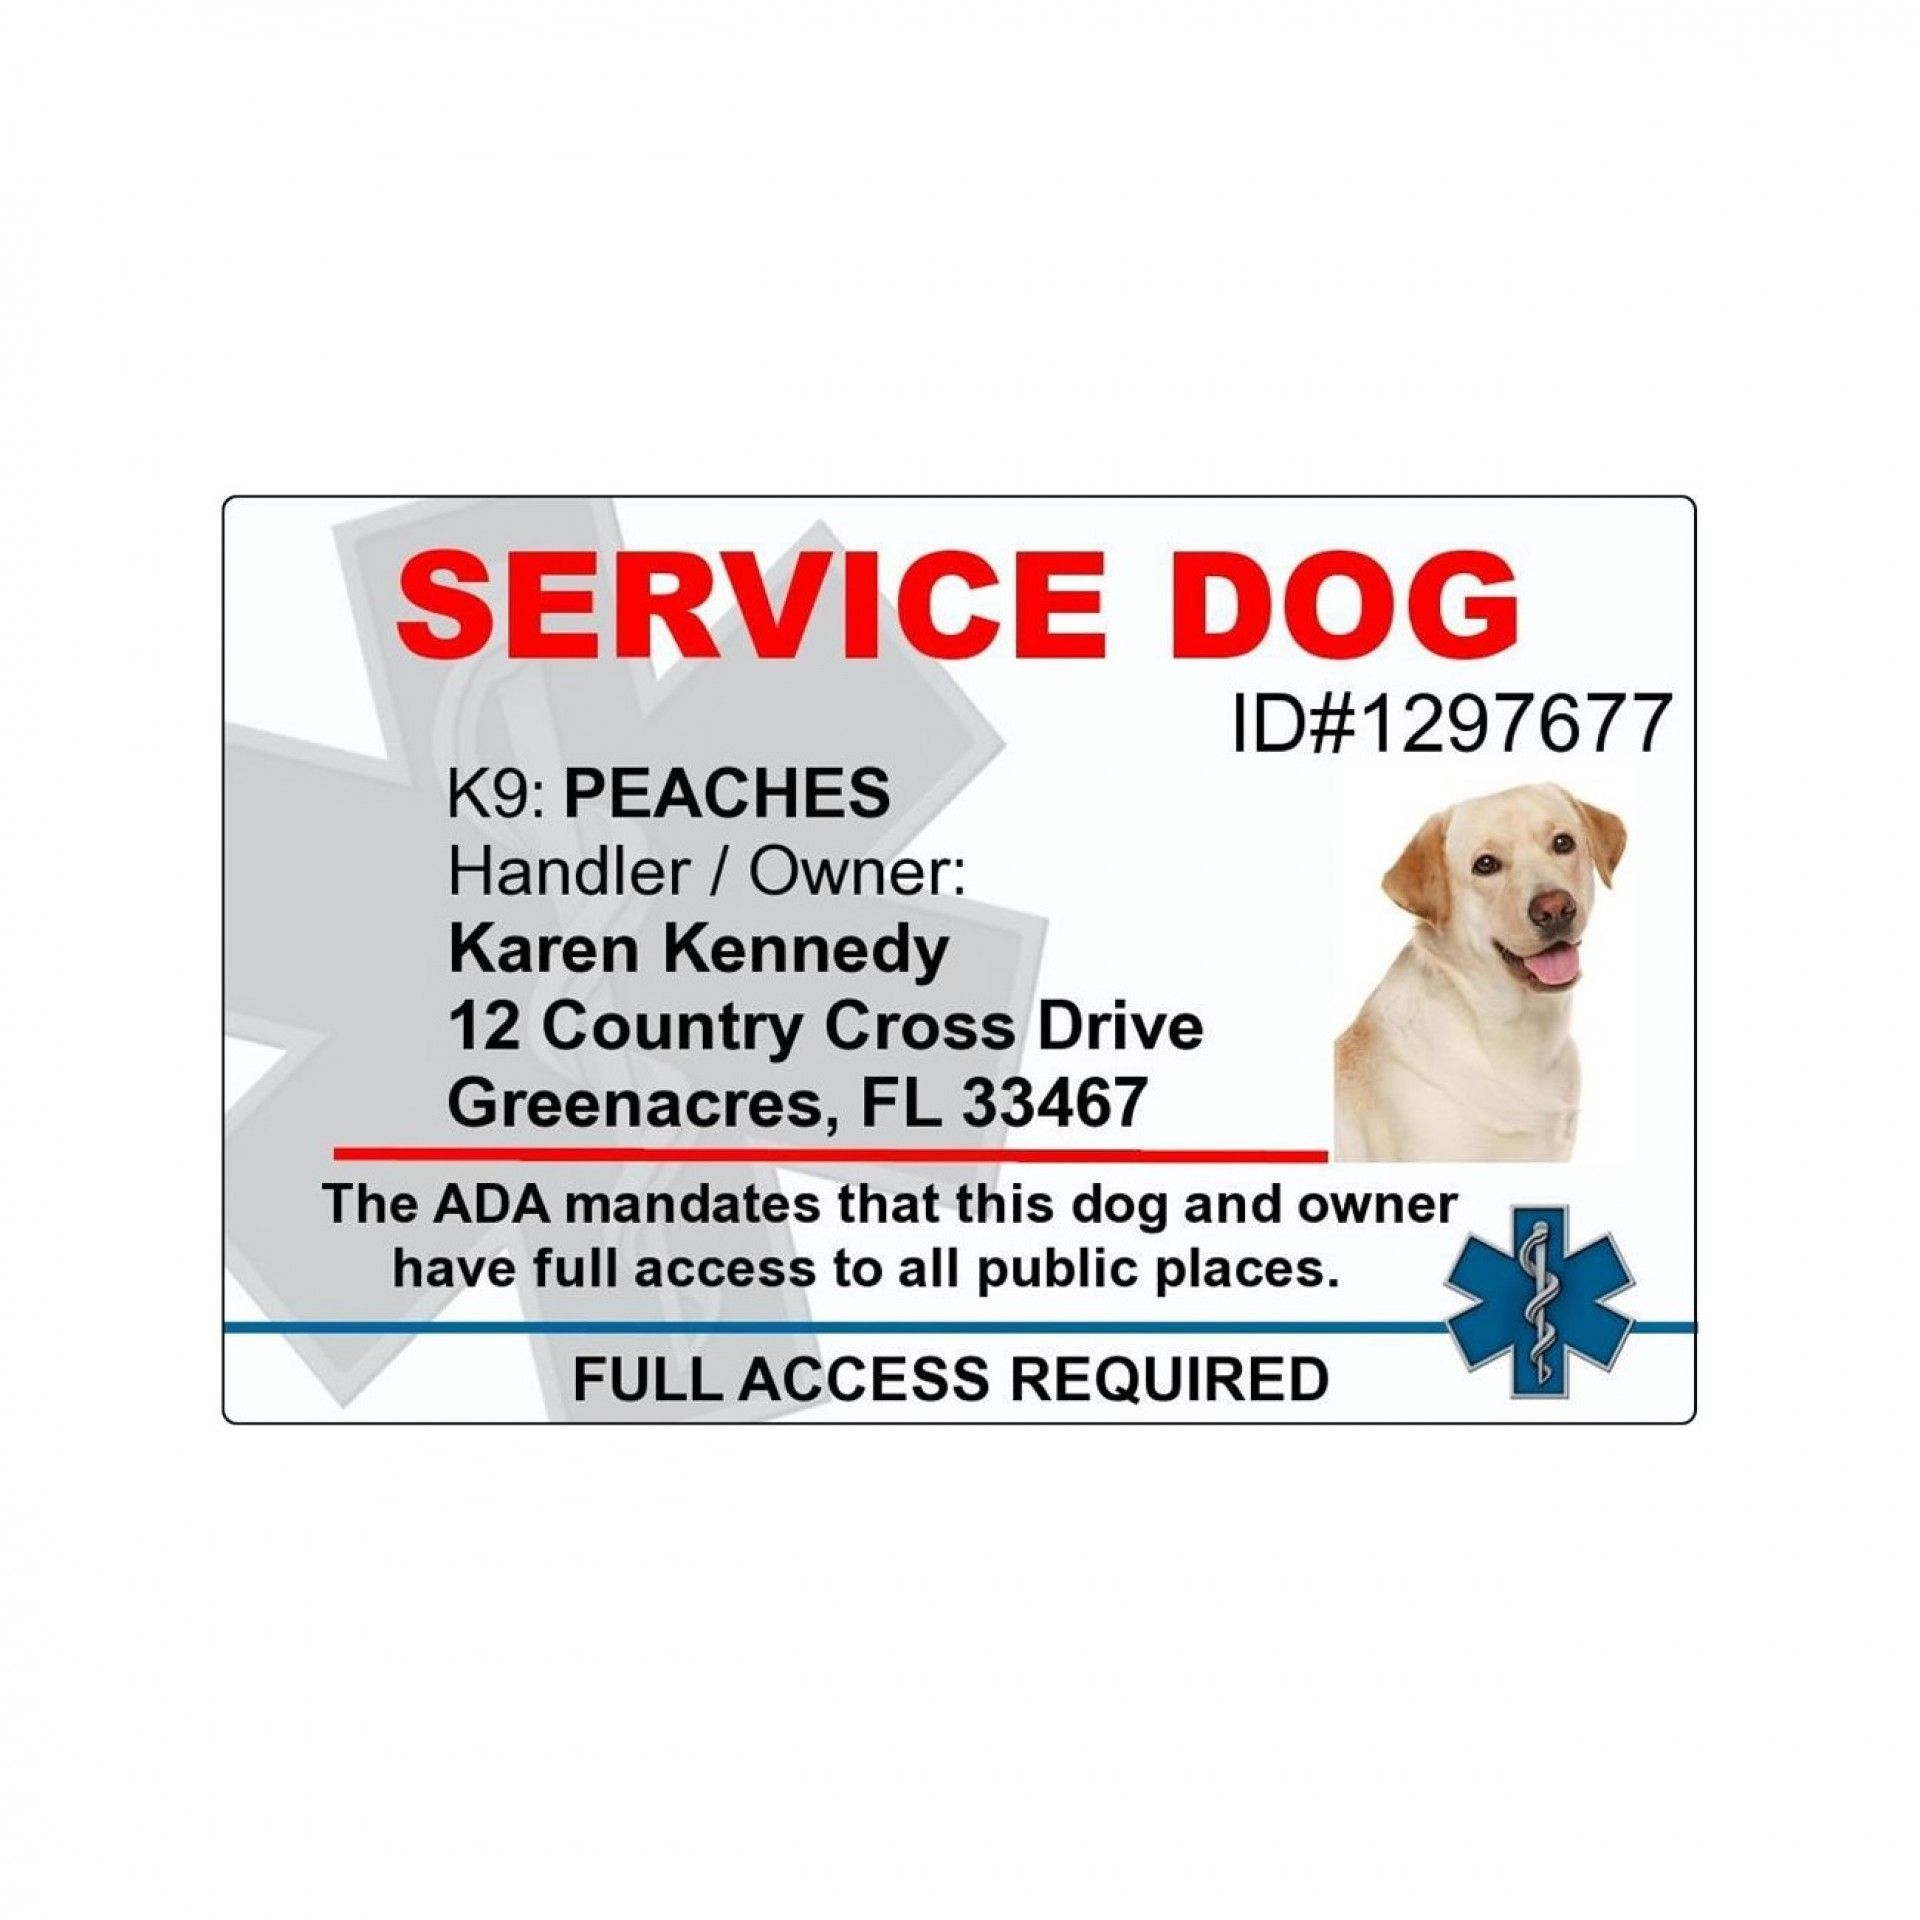 001 Shocking Service Dog Certificate Template Photo  Printable Id FreeFull